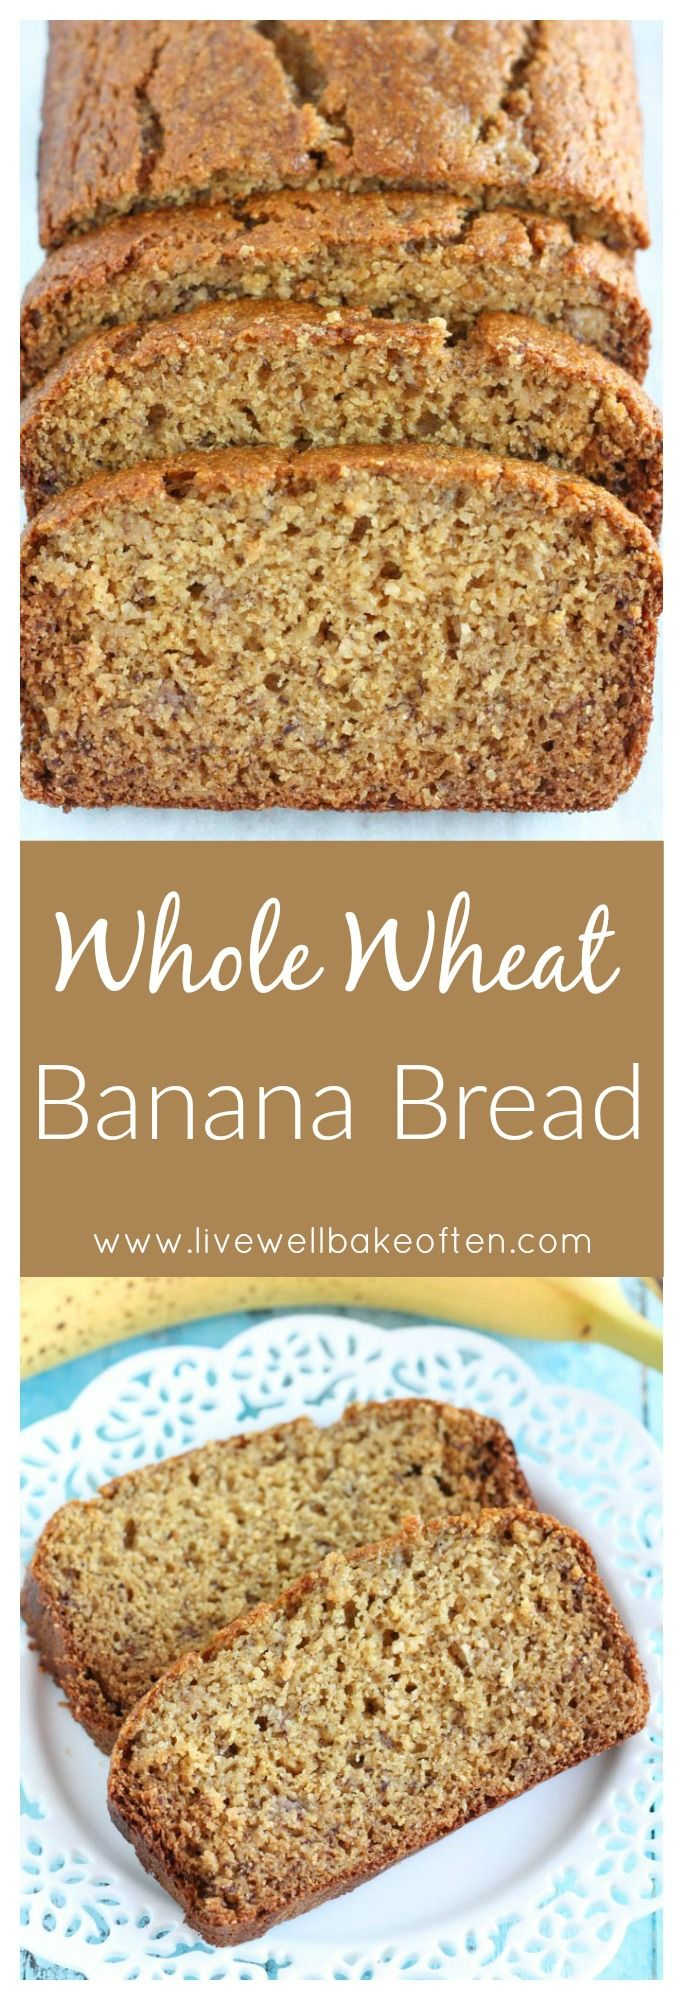 This Whole Wheat Banana Bread is lightened up with Greek yogurt and less sugar, but still tastes amazing!